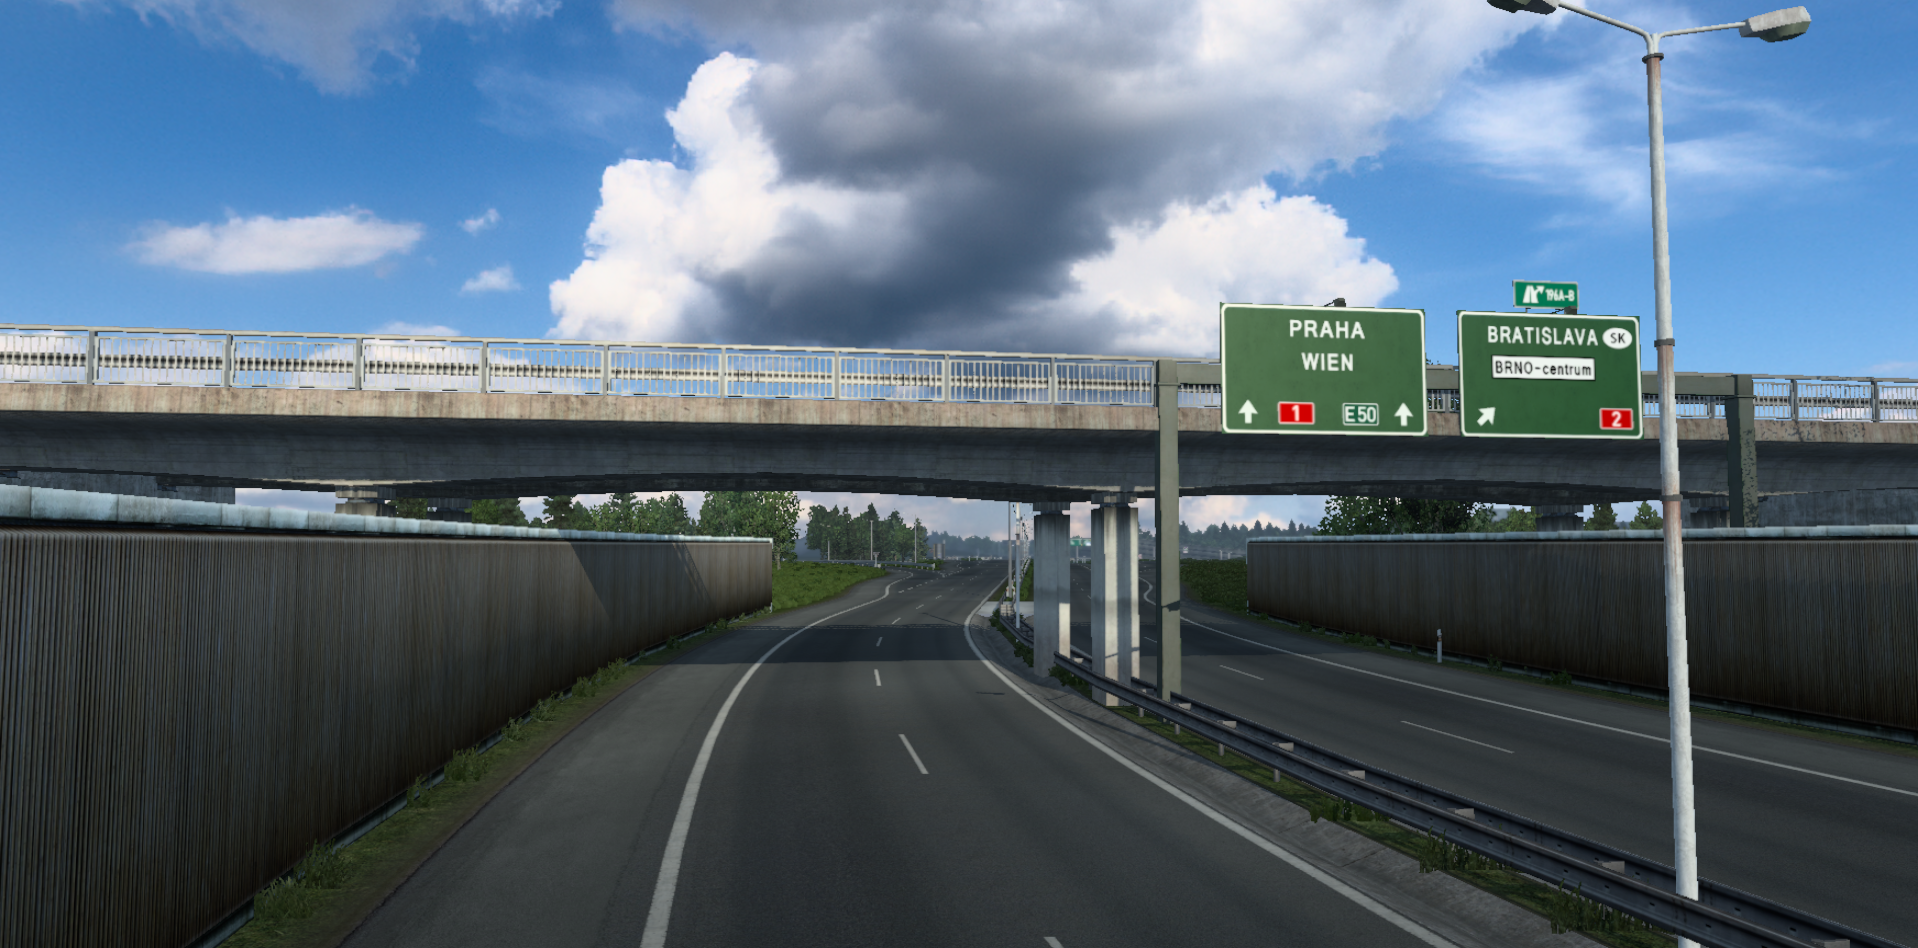 ets2_20210606_172542_00.png